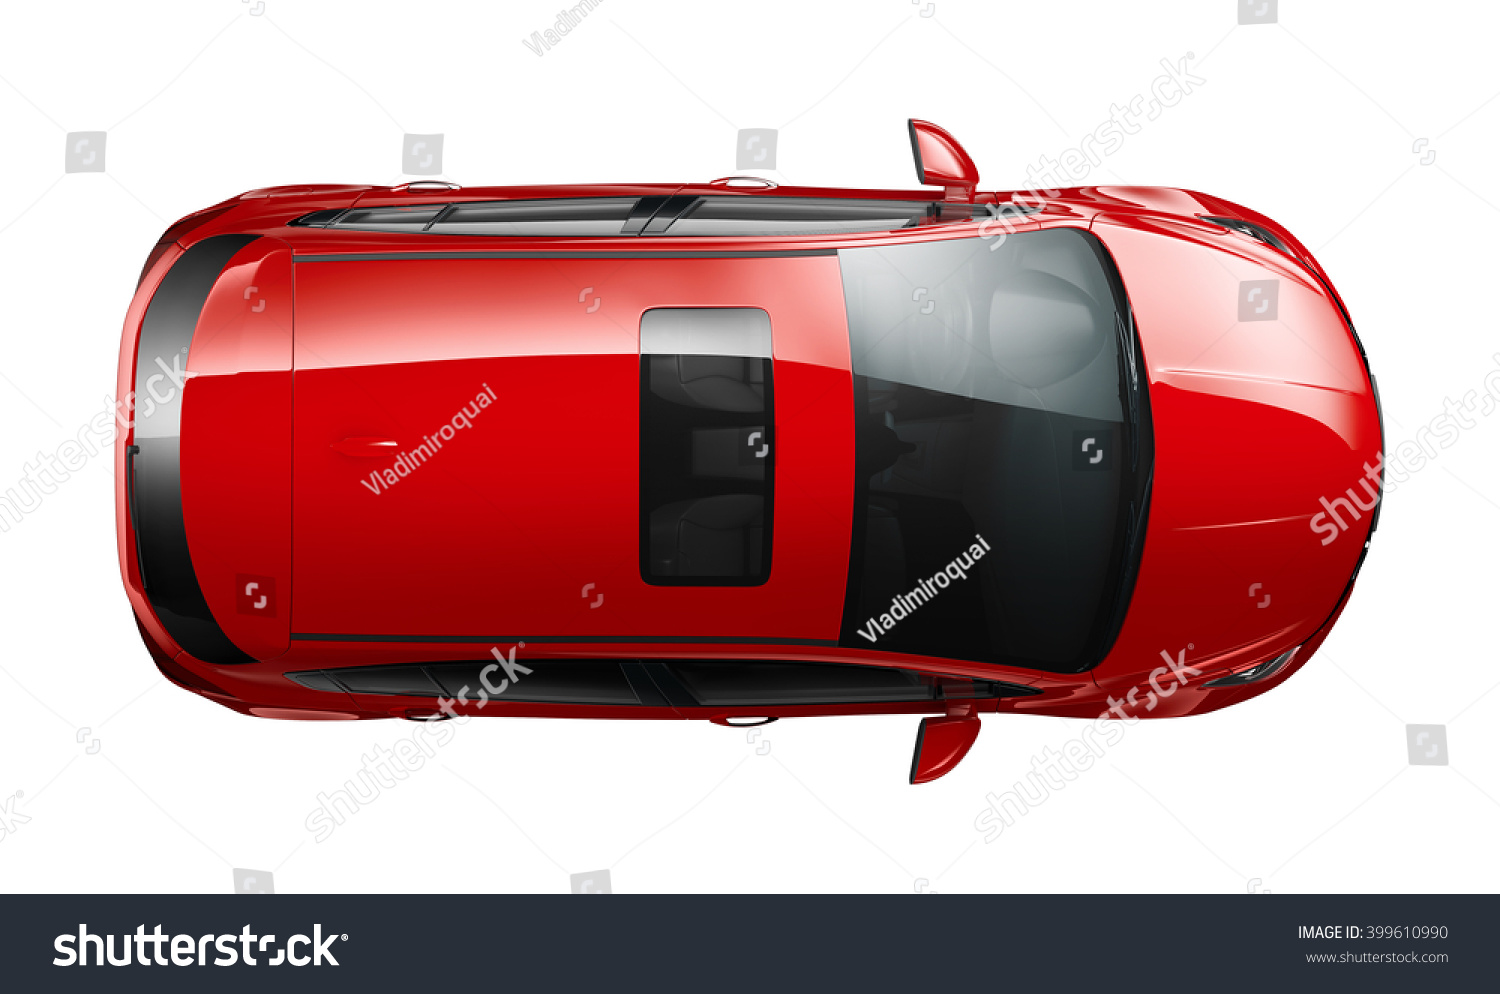 Generic Red Car Top View Stock Illustration